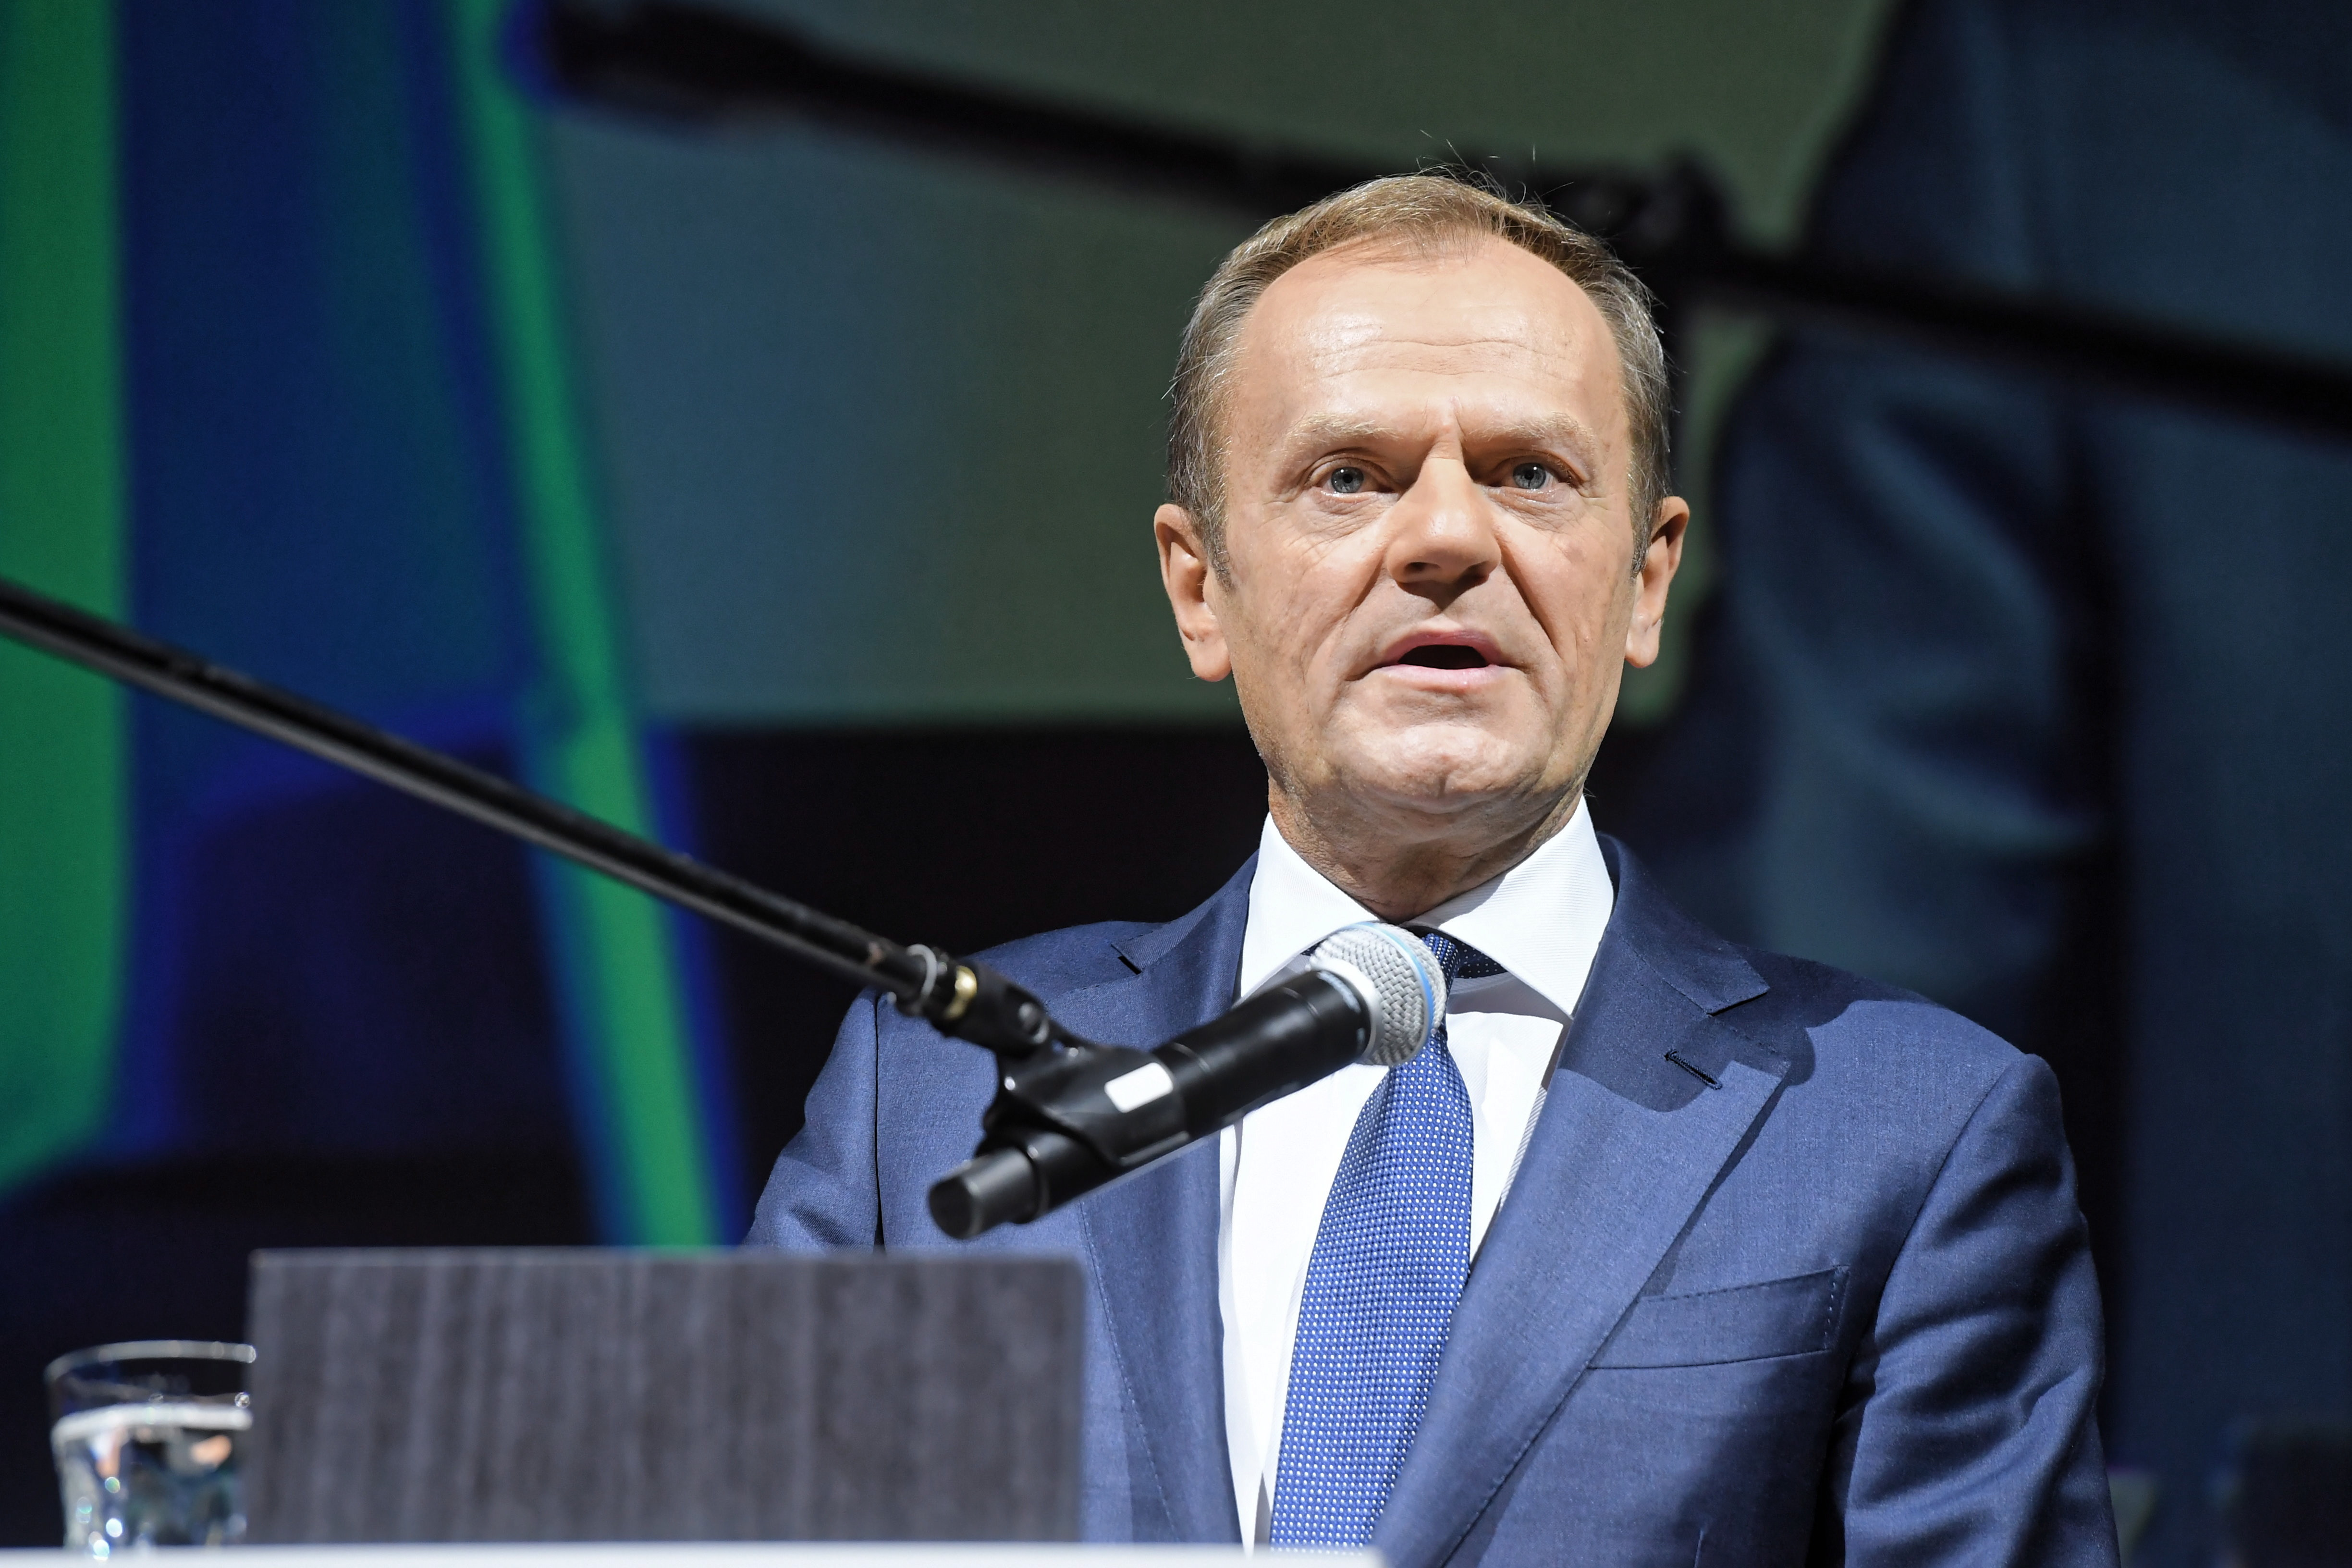 European Council President Donald Tusk delivers a speech on November 11, 2018. He warned that nationalism will be a  fundamental threat  to the European Union.